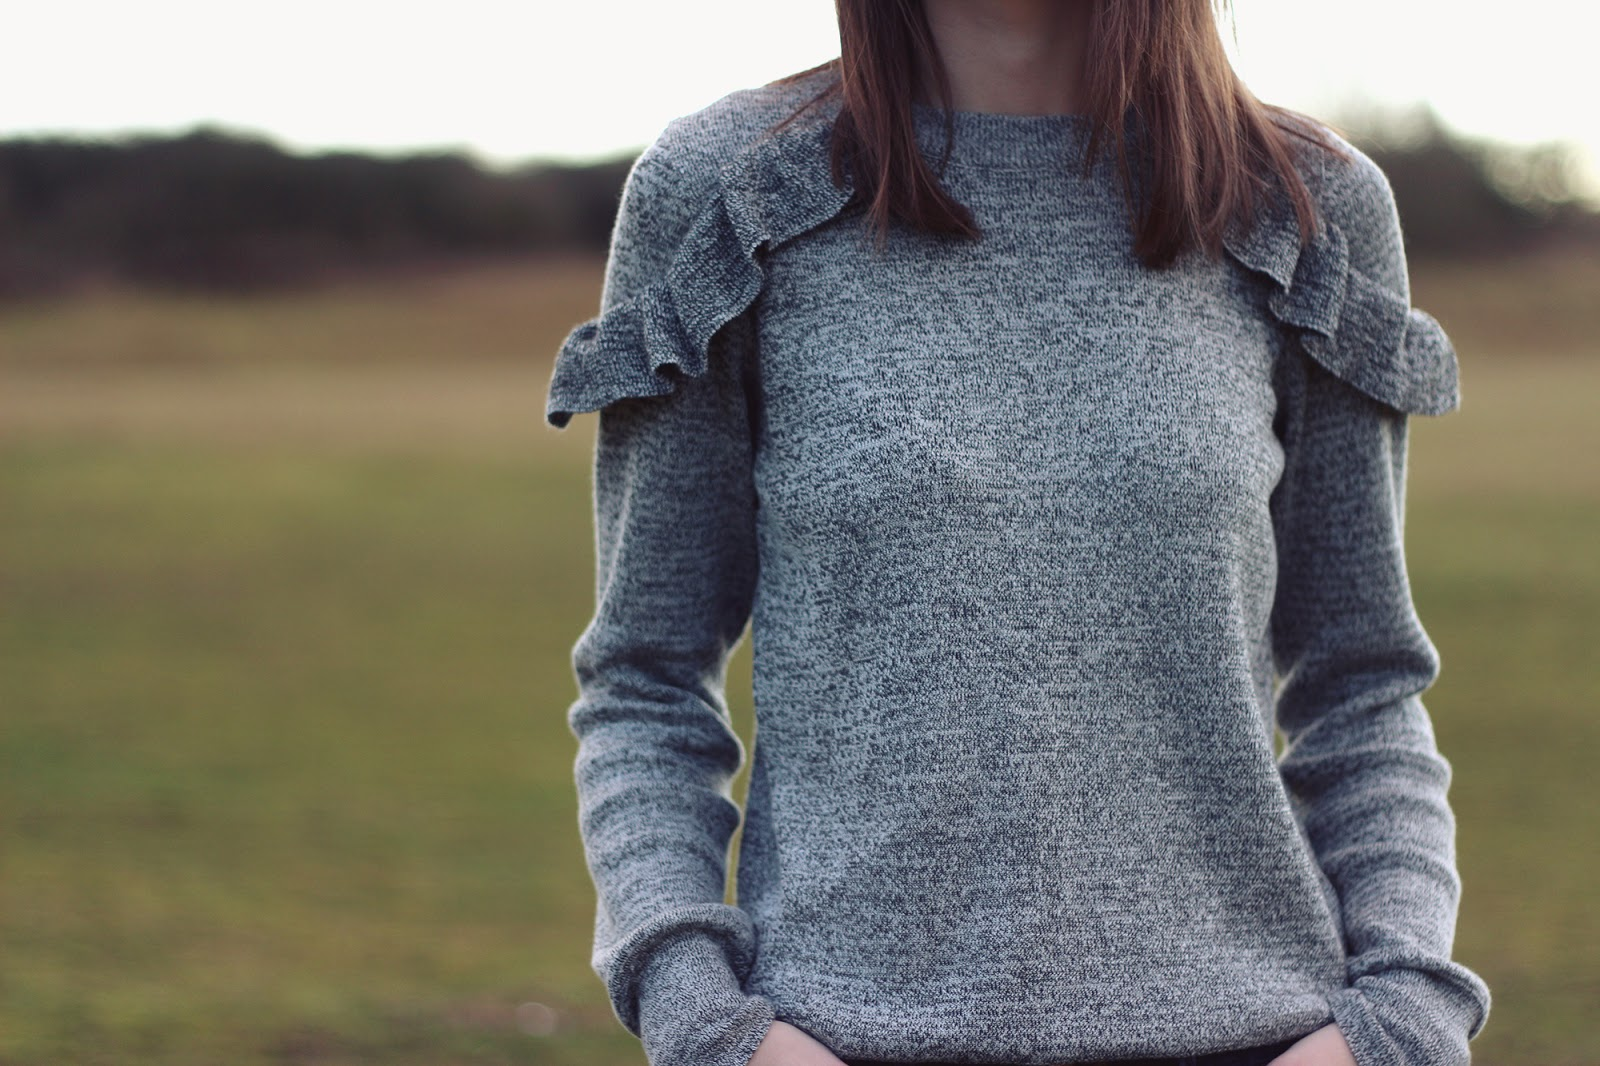 An image showing a jumper with ruffles